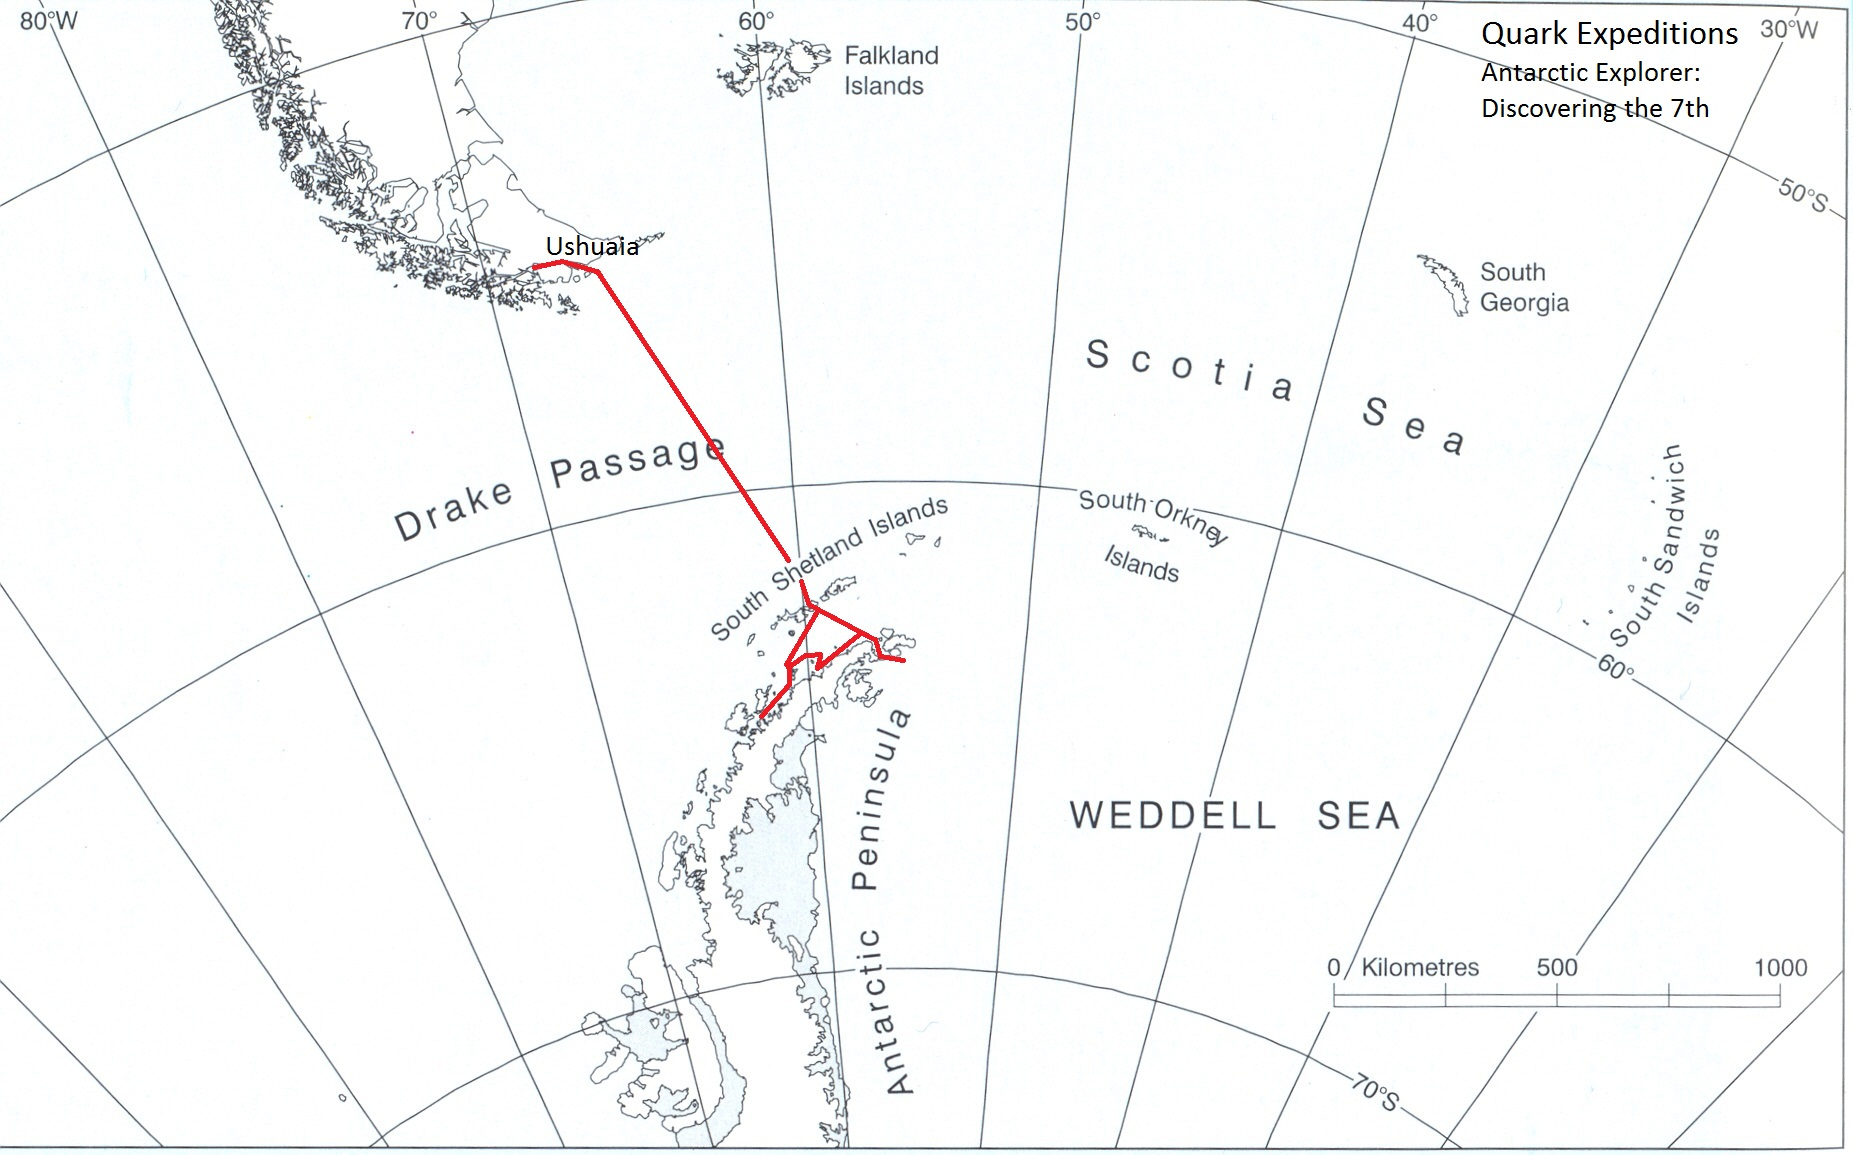 Our voyage map - courtesy of Quark Expeditions